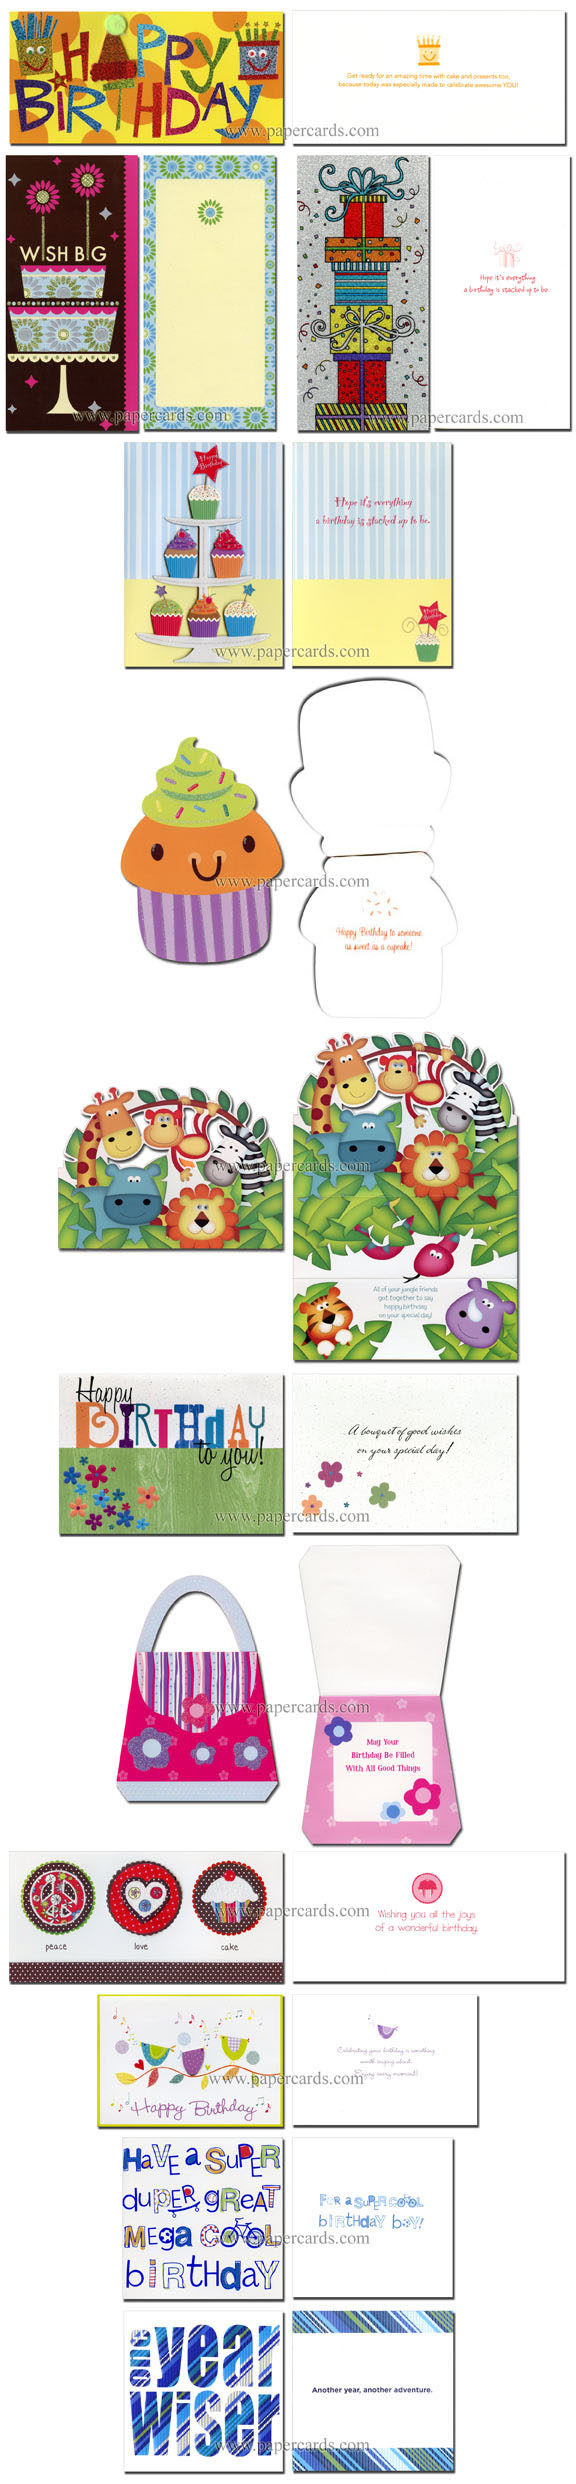 Box Of 25 Assorted All Occasion Embellished Greeting Cards By Paper